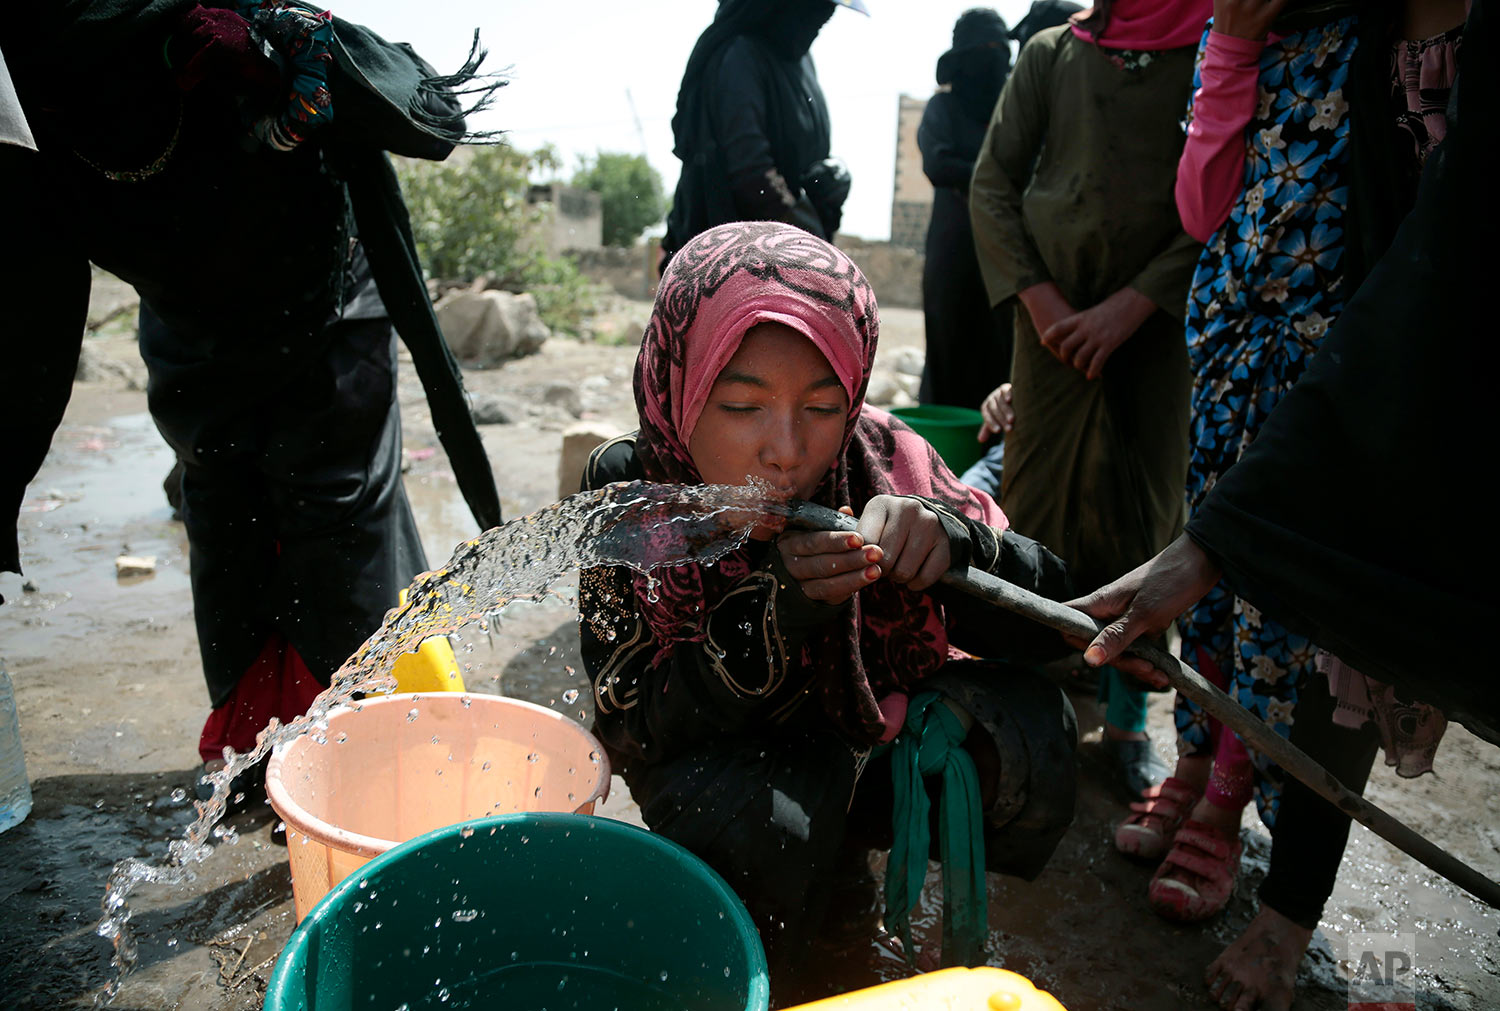 A girl drinks water from a well that alleged to be contaminated water with the bacterium Vibrio cholera, on the outskirts of Sanaa, Yemen on July 12, 2017. Yemen's raging two-year conflict has served as an incubator for lethal cholera. (AP Photo/Hani Mohammed)